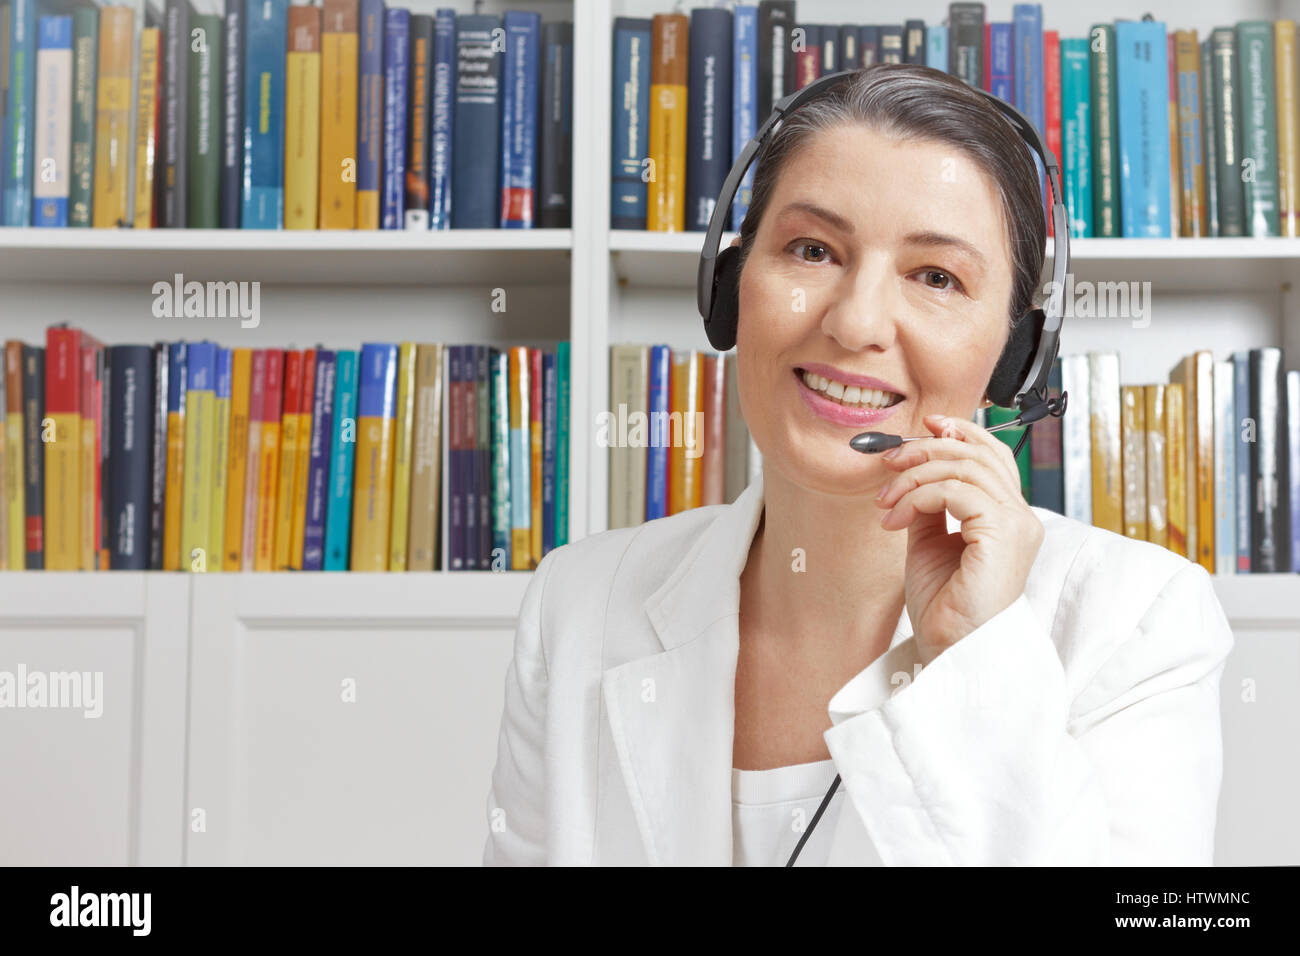 Friendly smiling mature woman with headphones and white blazer in a library, talking with someone via a video call, Stock Photo